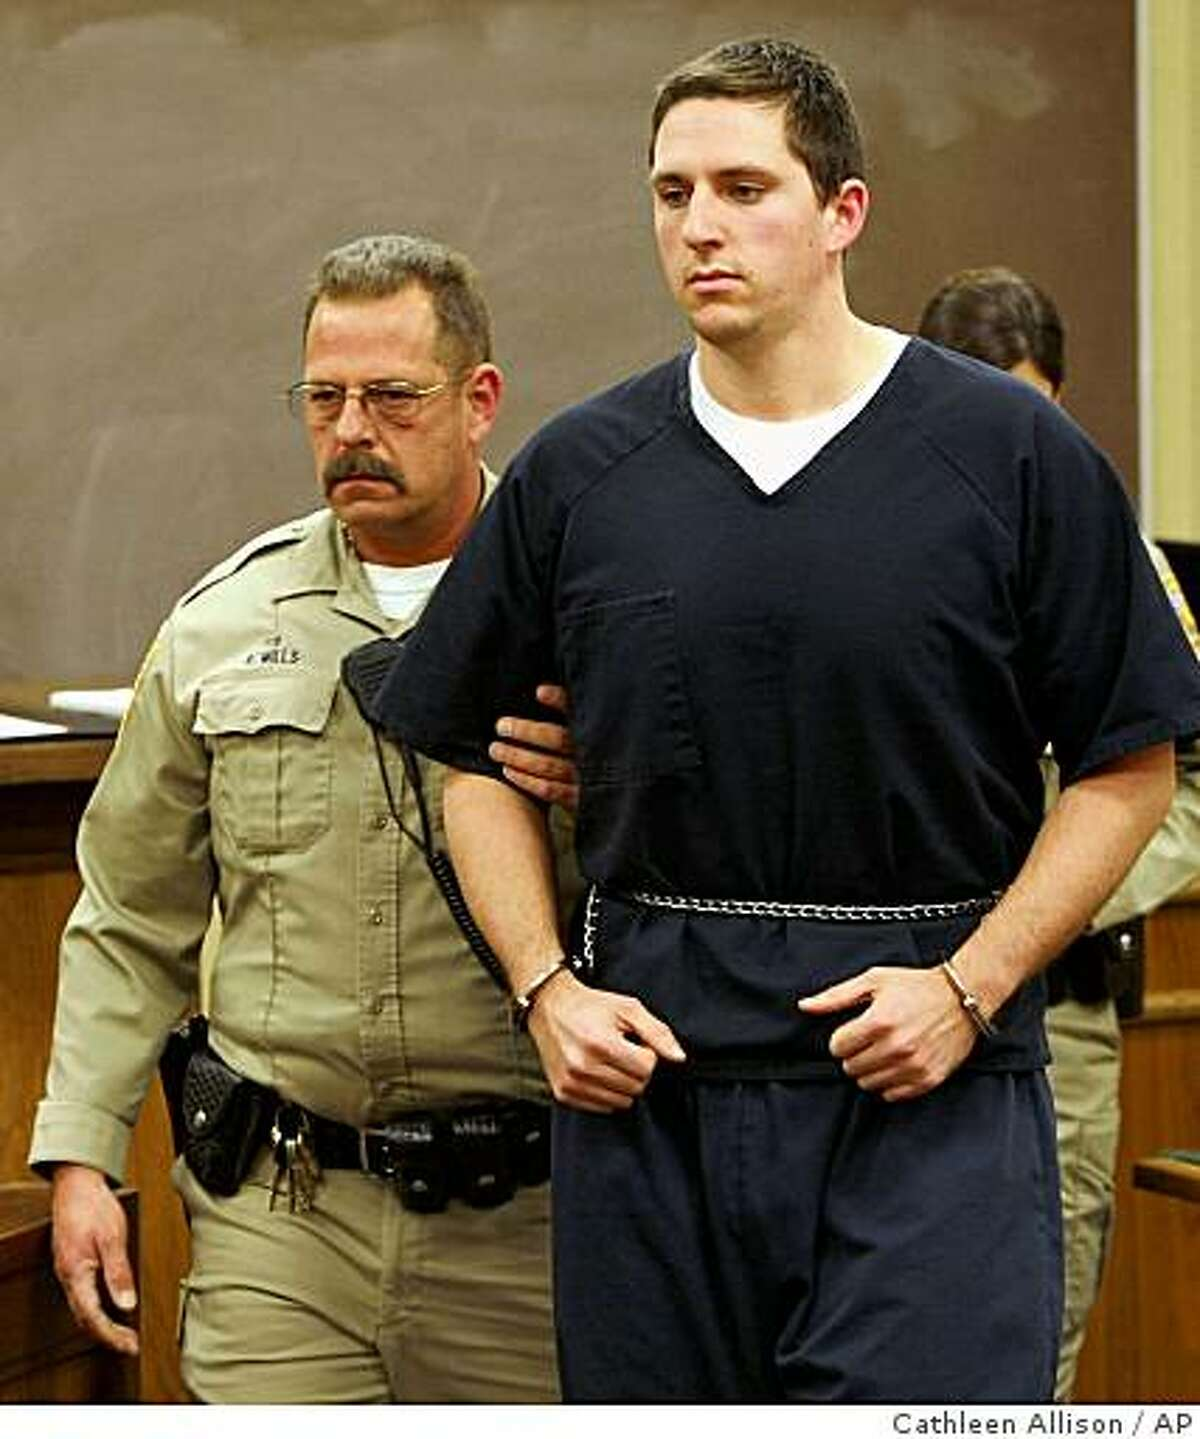 Johannes Mehserle, right, appears in the East Fork Justice Court on Wednesday, Jan. 14, 2009, in Minden, Nev. Mehserle is being held on charges related to the New Year's day shooting of an unarmed man on an Oakland, Calif., train platform. Mehserle, 27, waived extradition to California early Wednesday during a brief court appearance in Minden, Nev., and was being held without bail on a warrant charging homicide. Douglas County Sheriff's Deputy Ron Mills is at left.